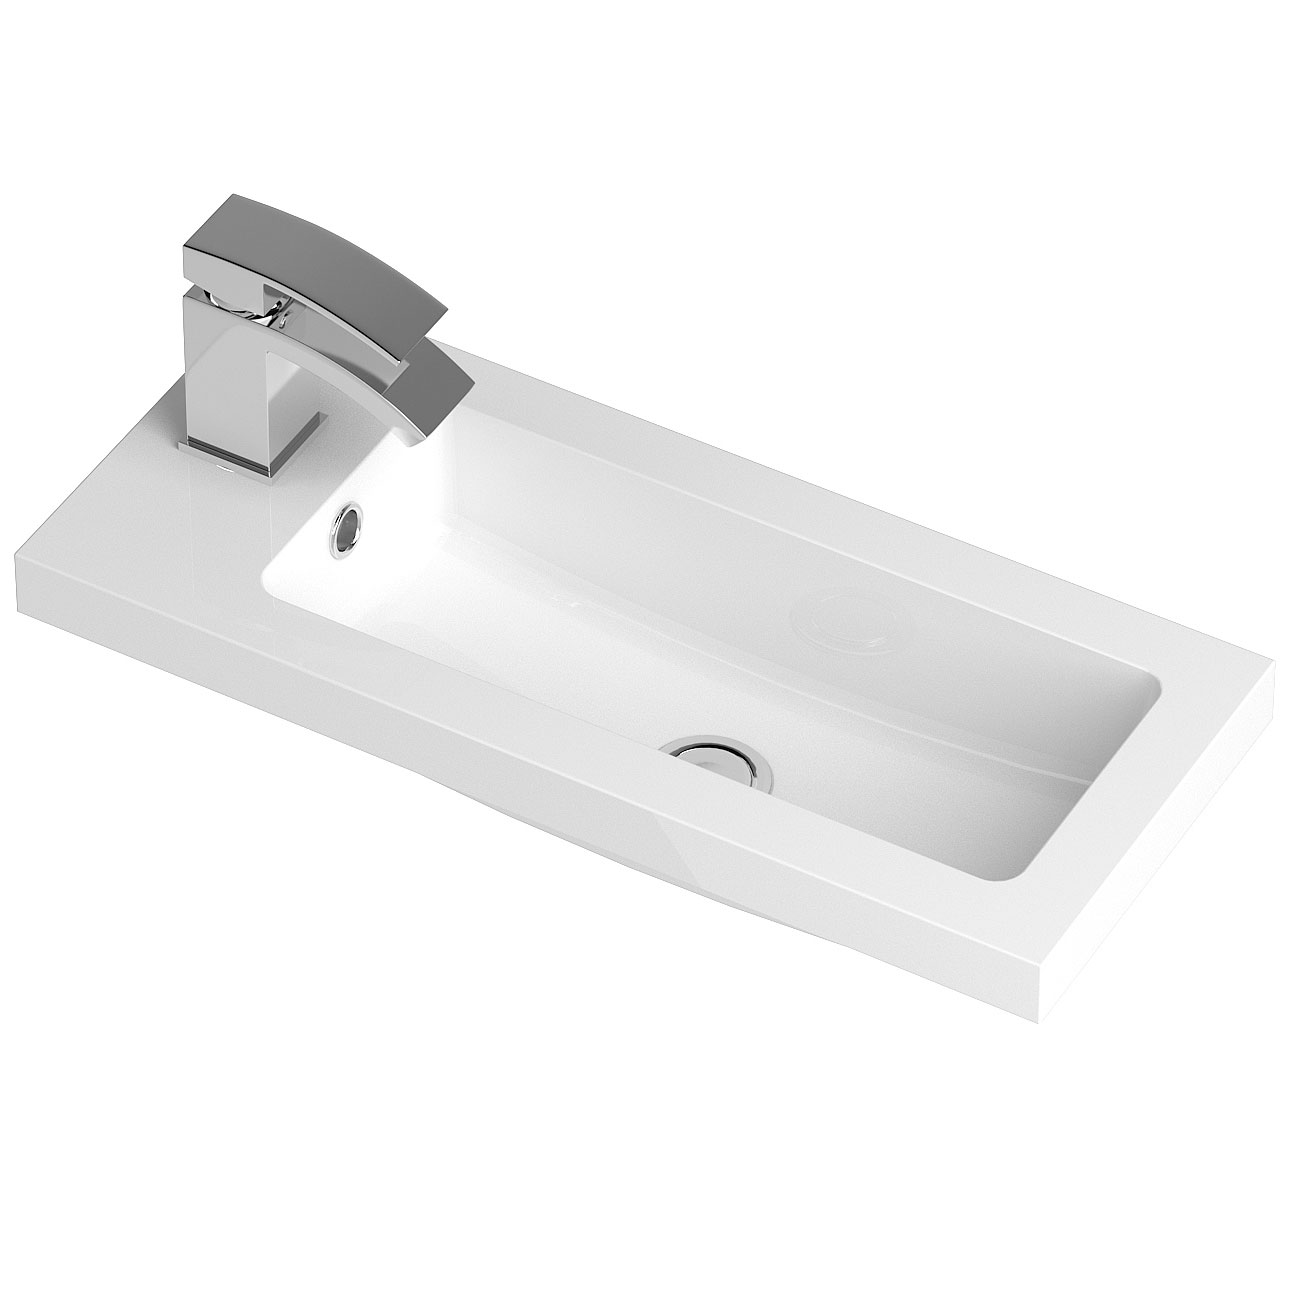 Hudson Reed Apollo Compact Wall Hung Vanity Unit & Basin 605mm Wide Gloss Cashmere 1 Tap Hole